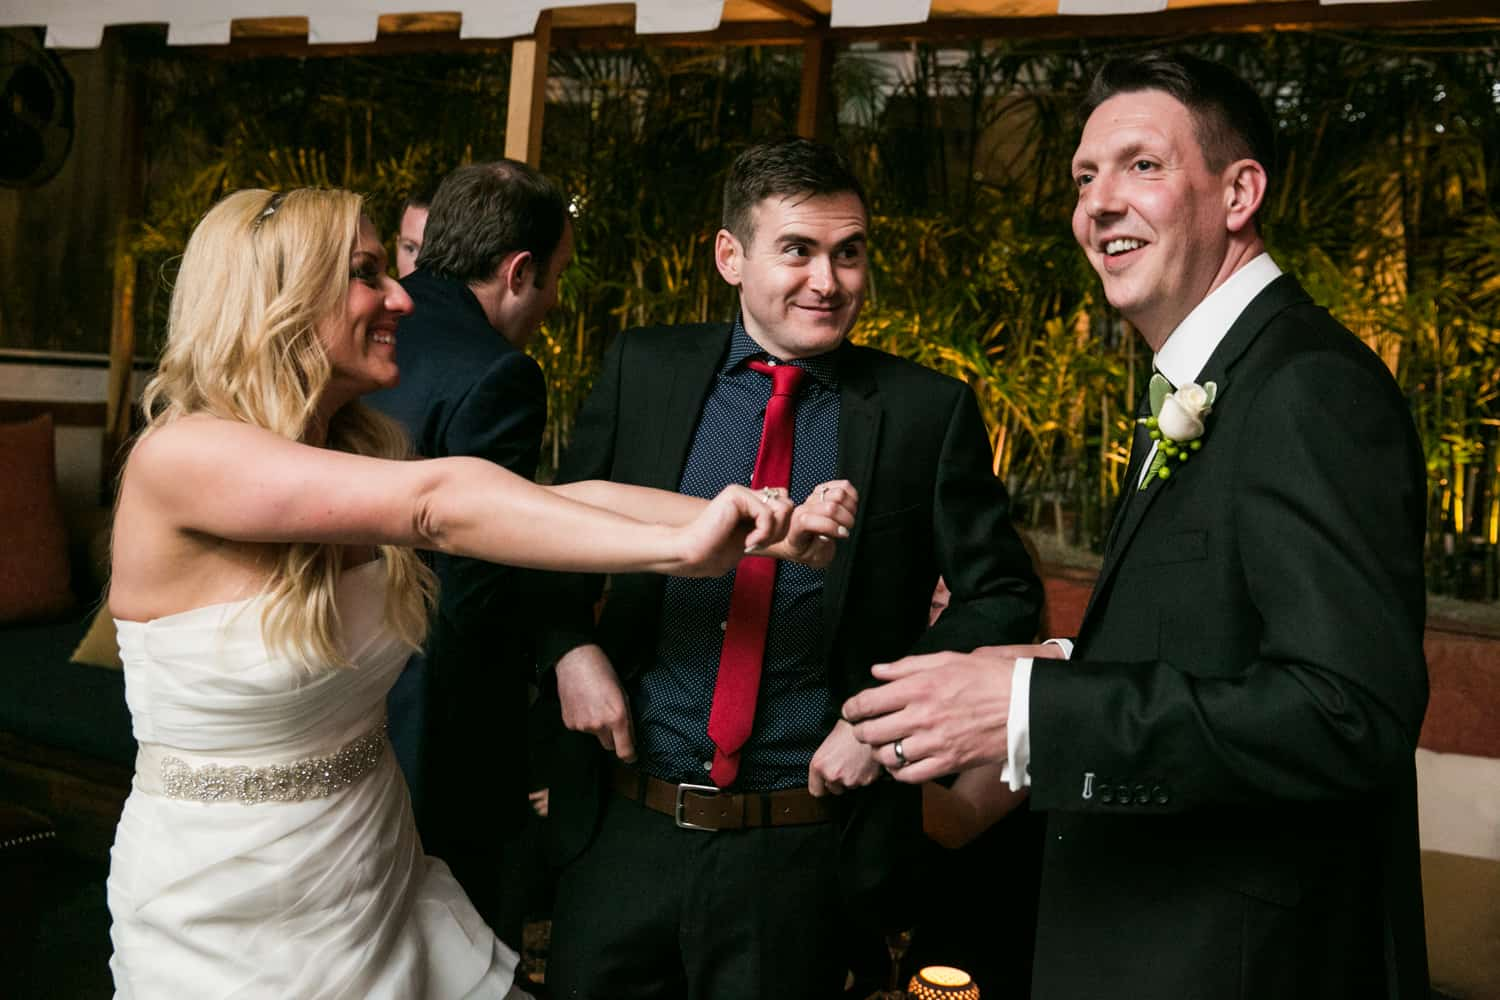 Bride dancing with groom and guest at a Bergdorf Goodman wedding reception